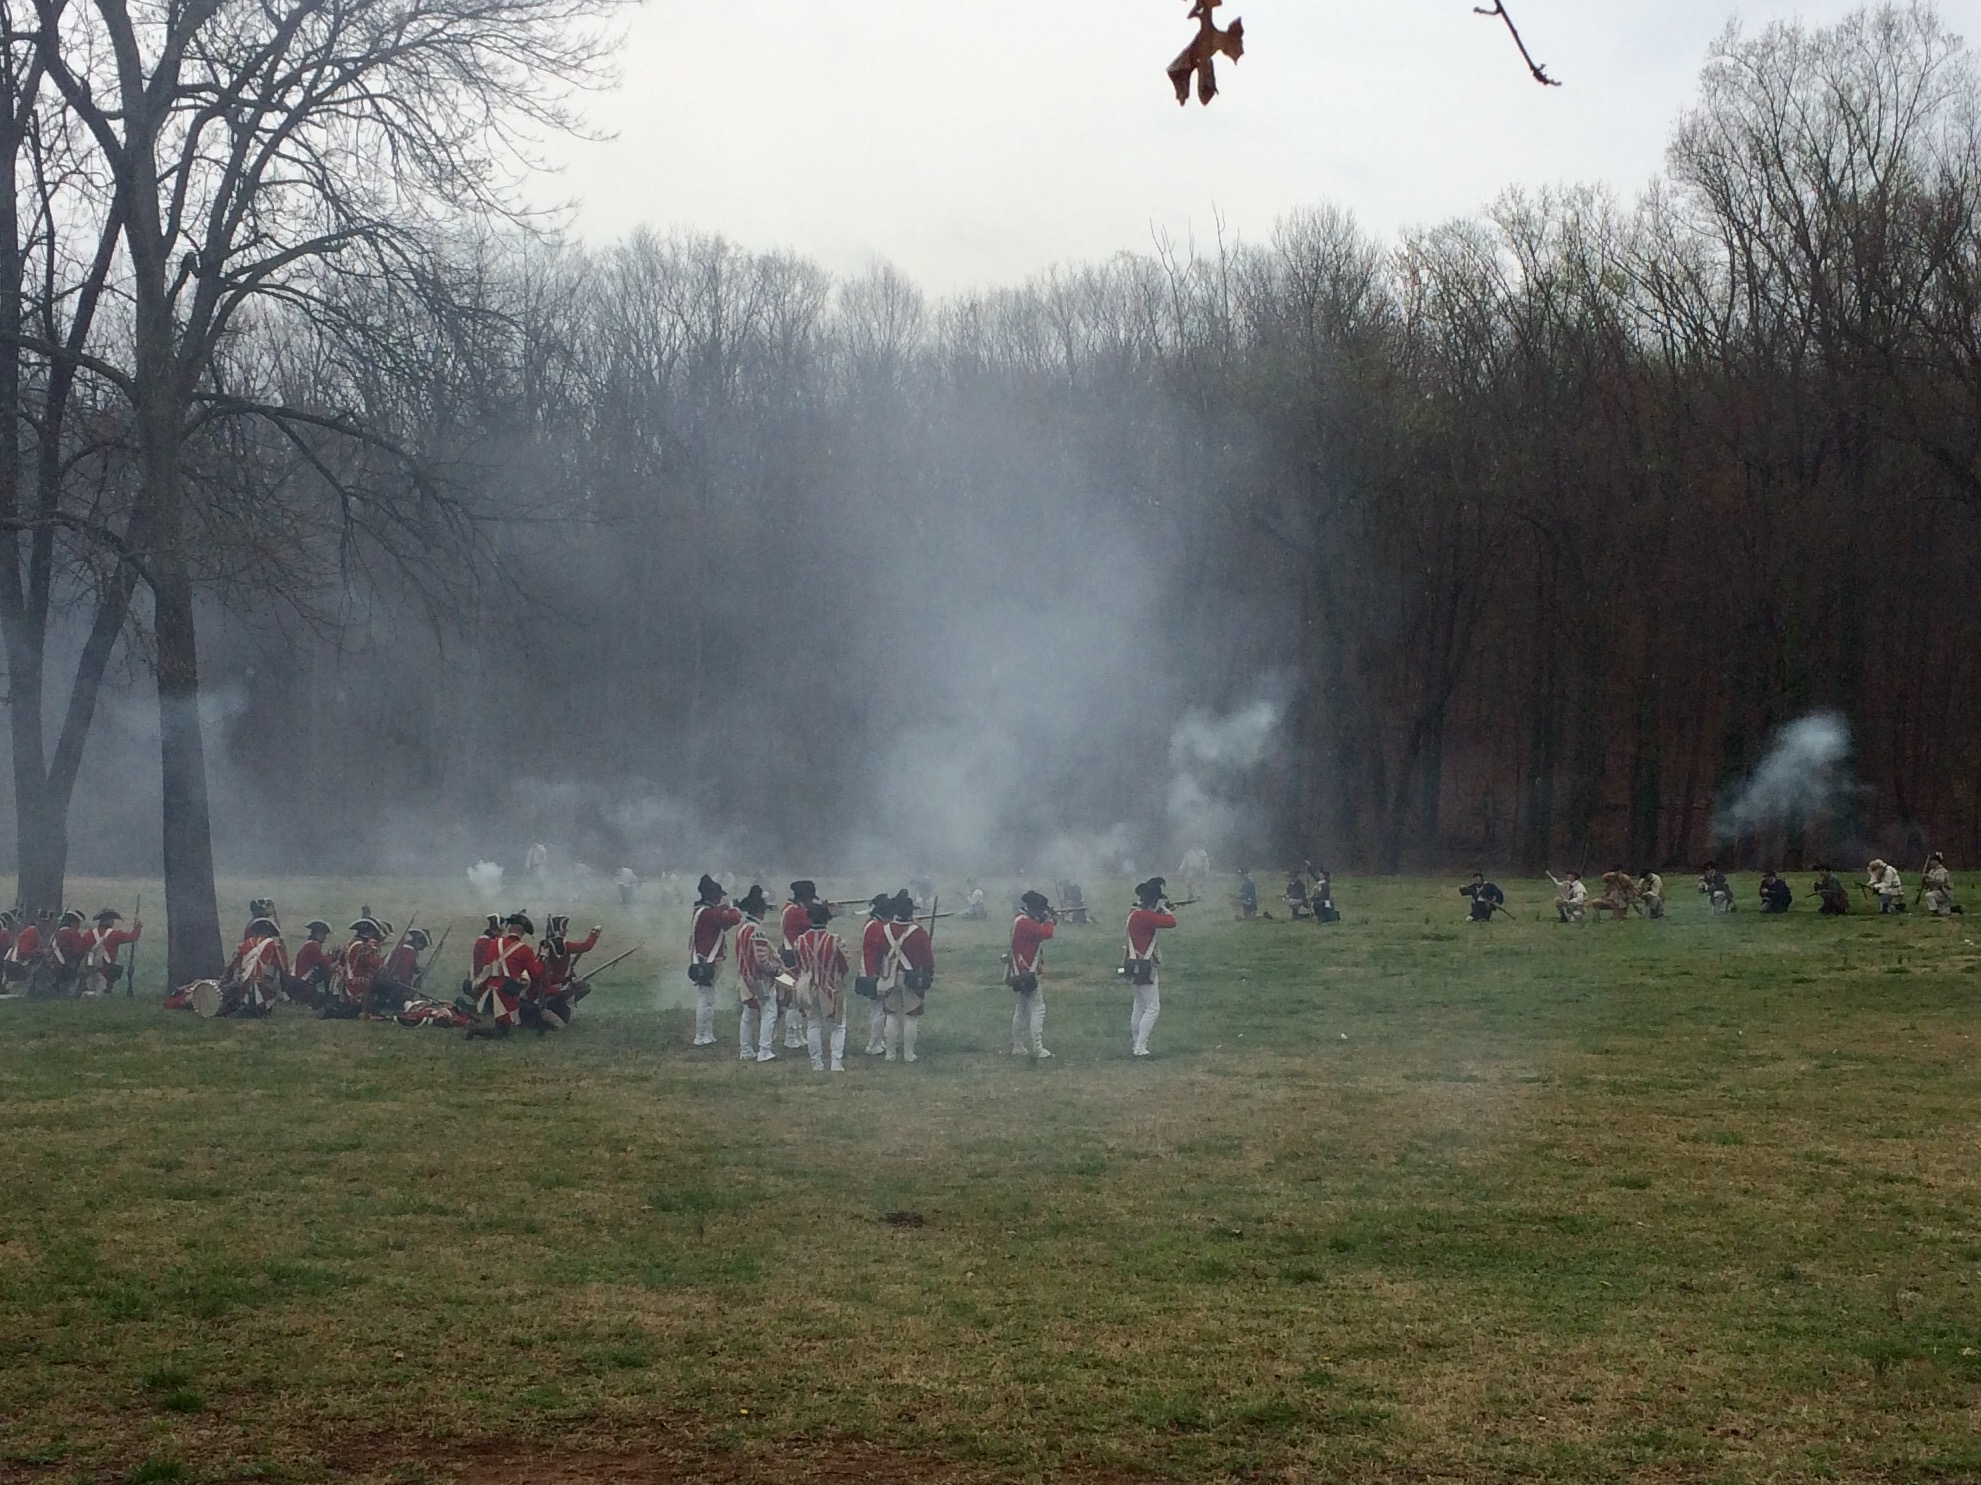 Annual Reenactment of the Battle of Guilford Courthouse